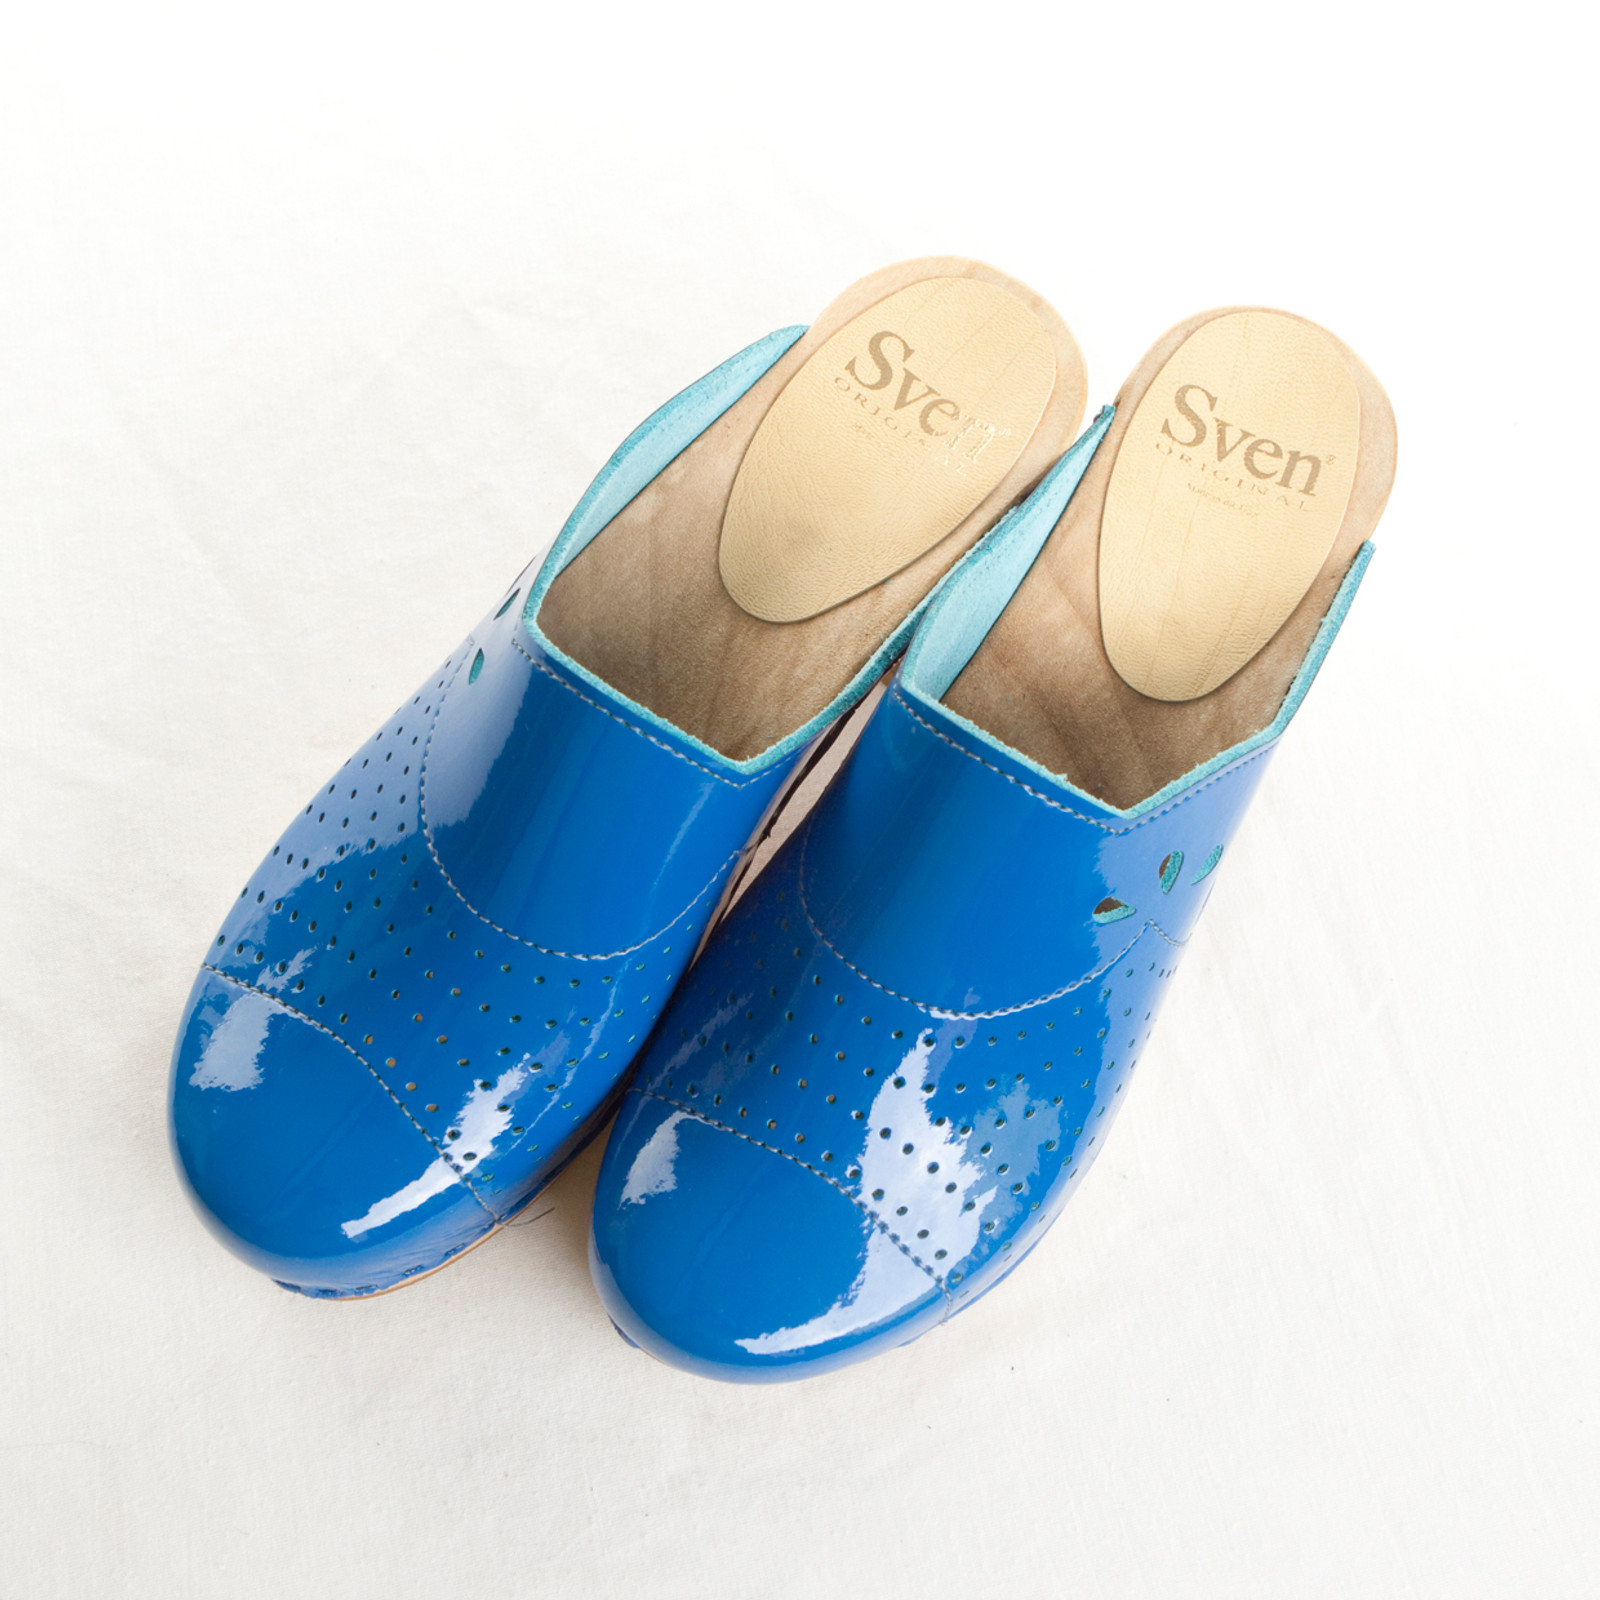 Royal Blue Patent with Brown Base